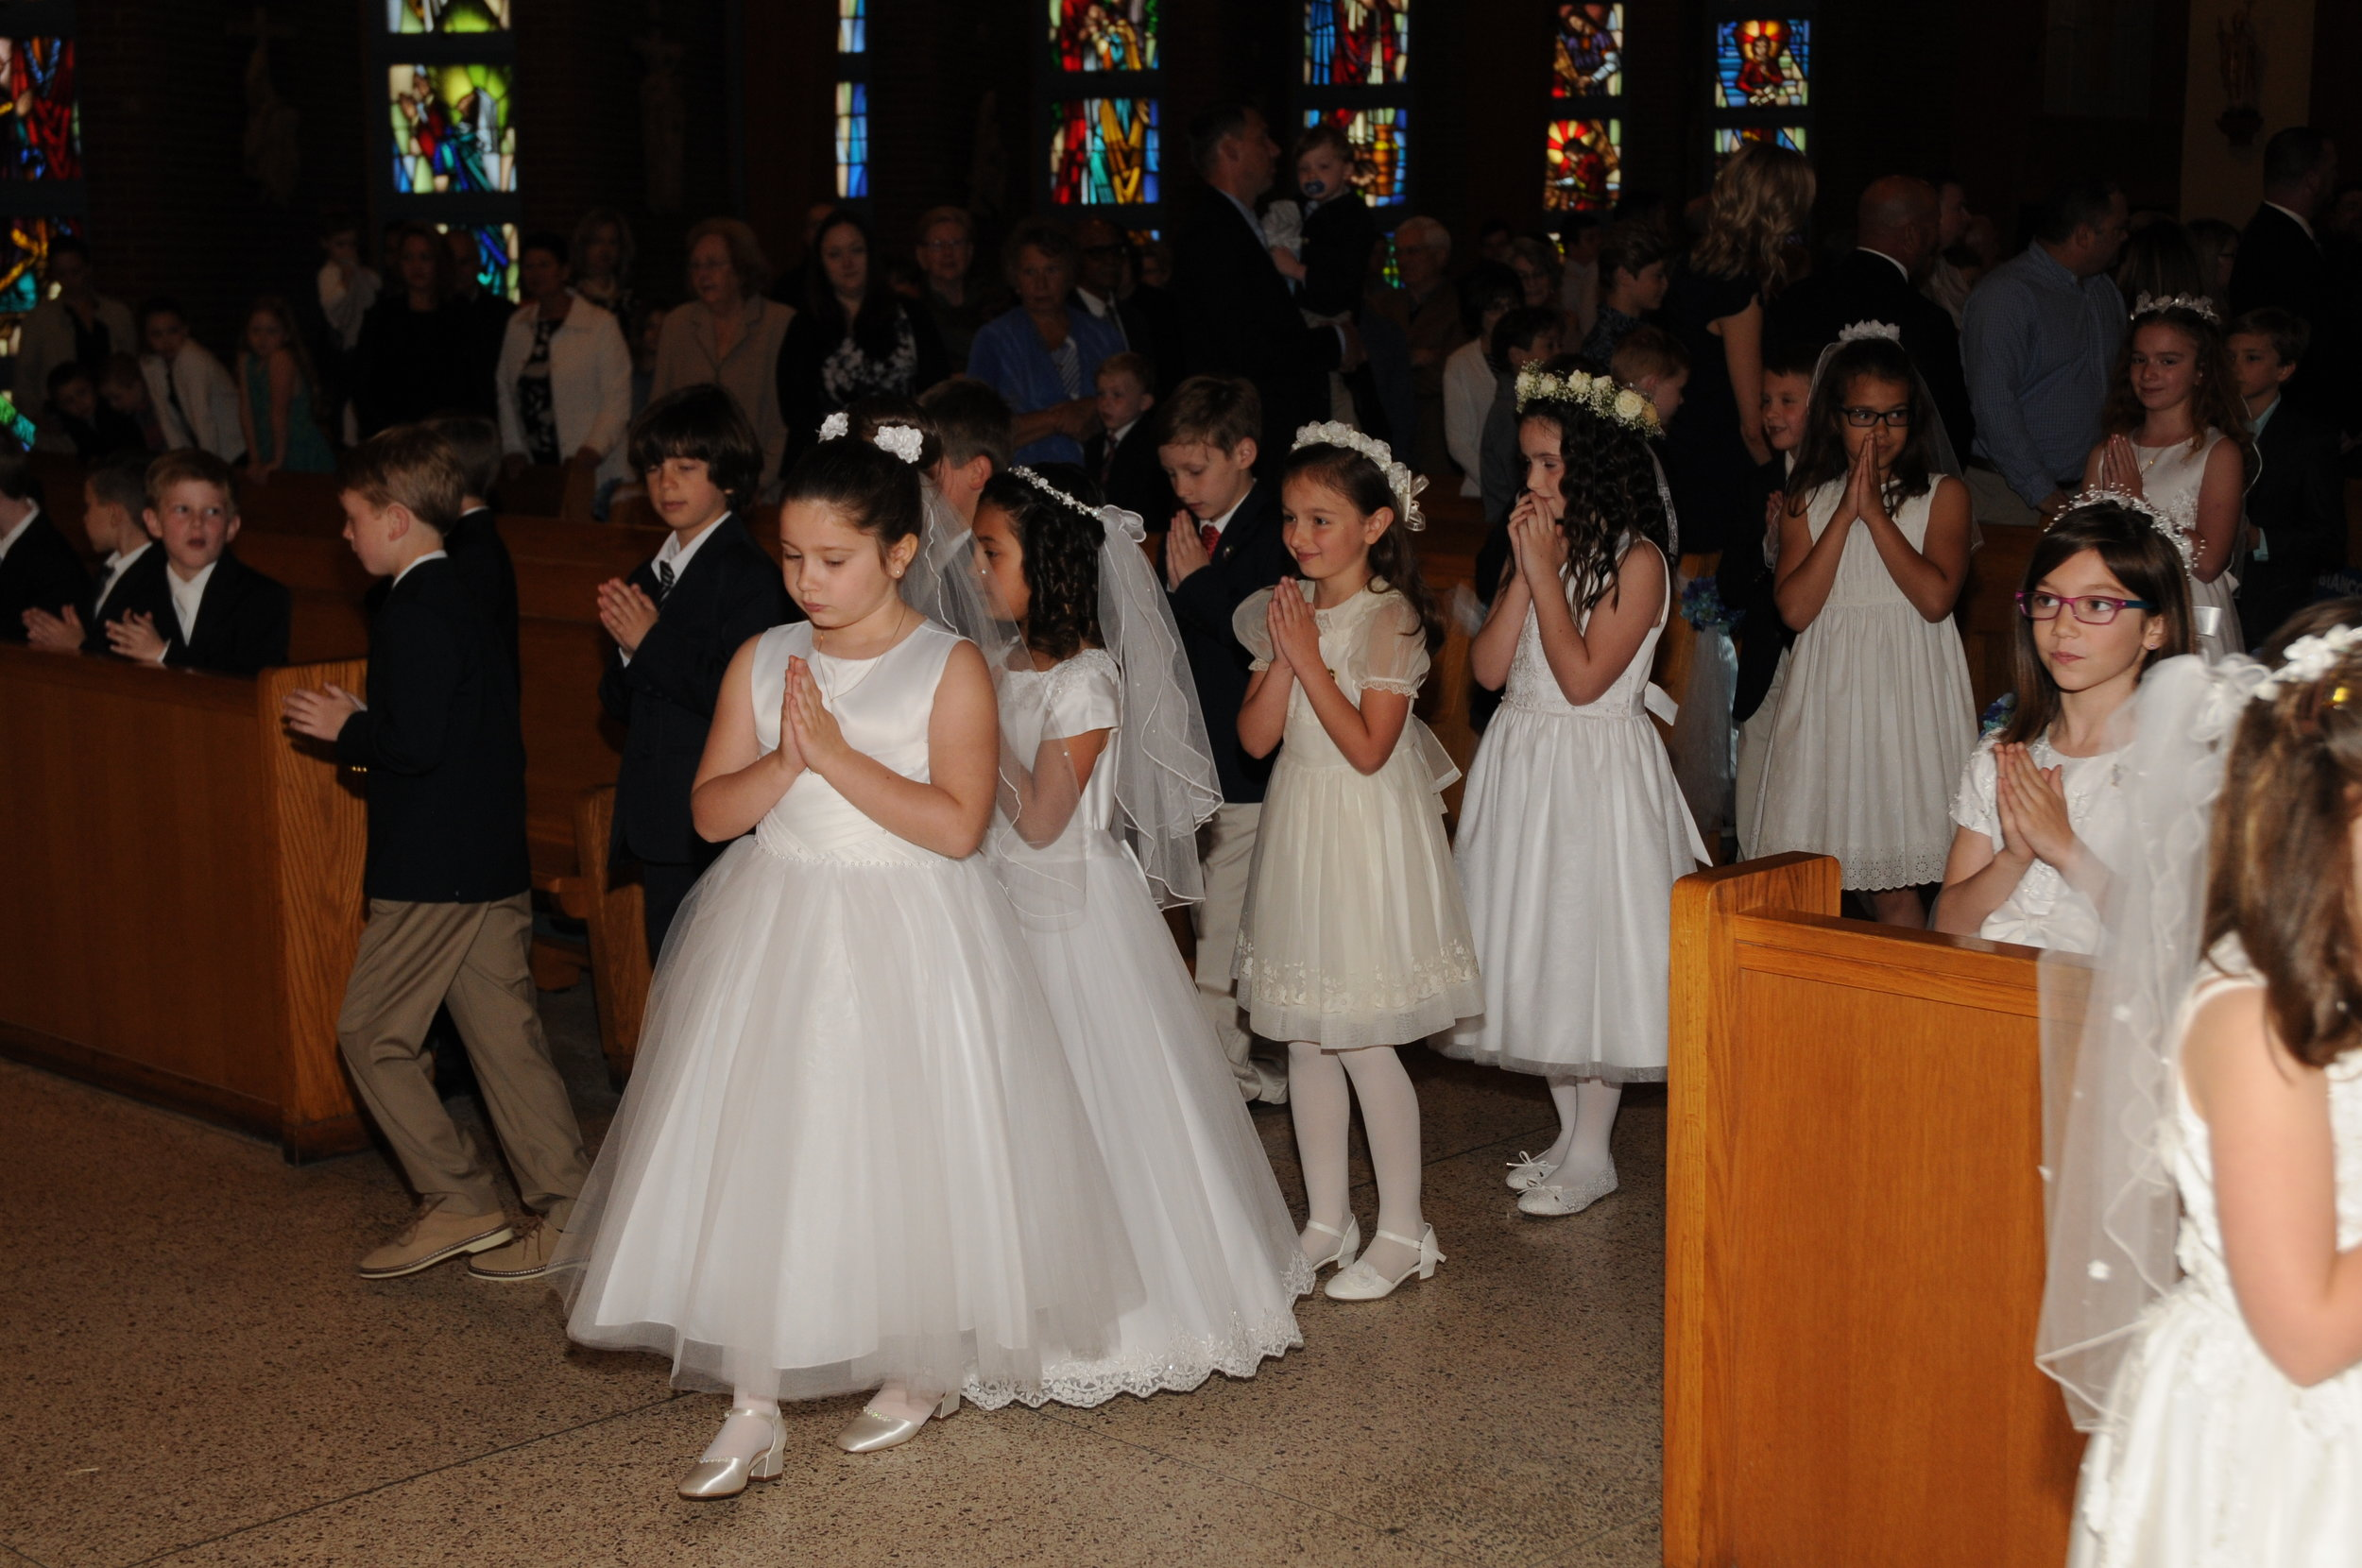 ce26536da Sixty-five of our children receive First Holy Communion on Saturday. These  children have been preparing all year for this special occasion.